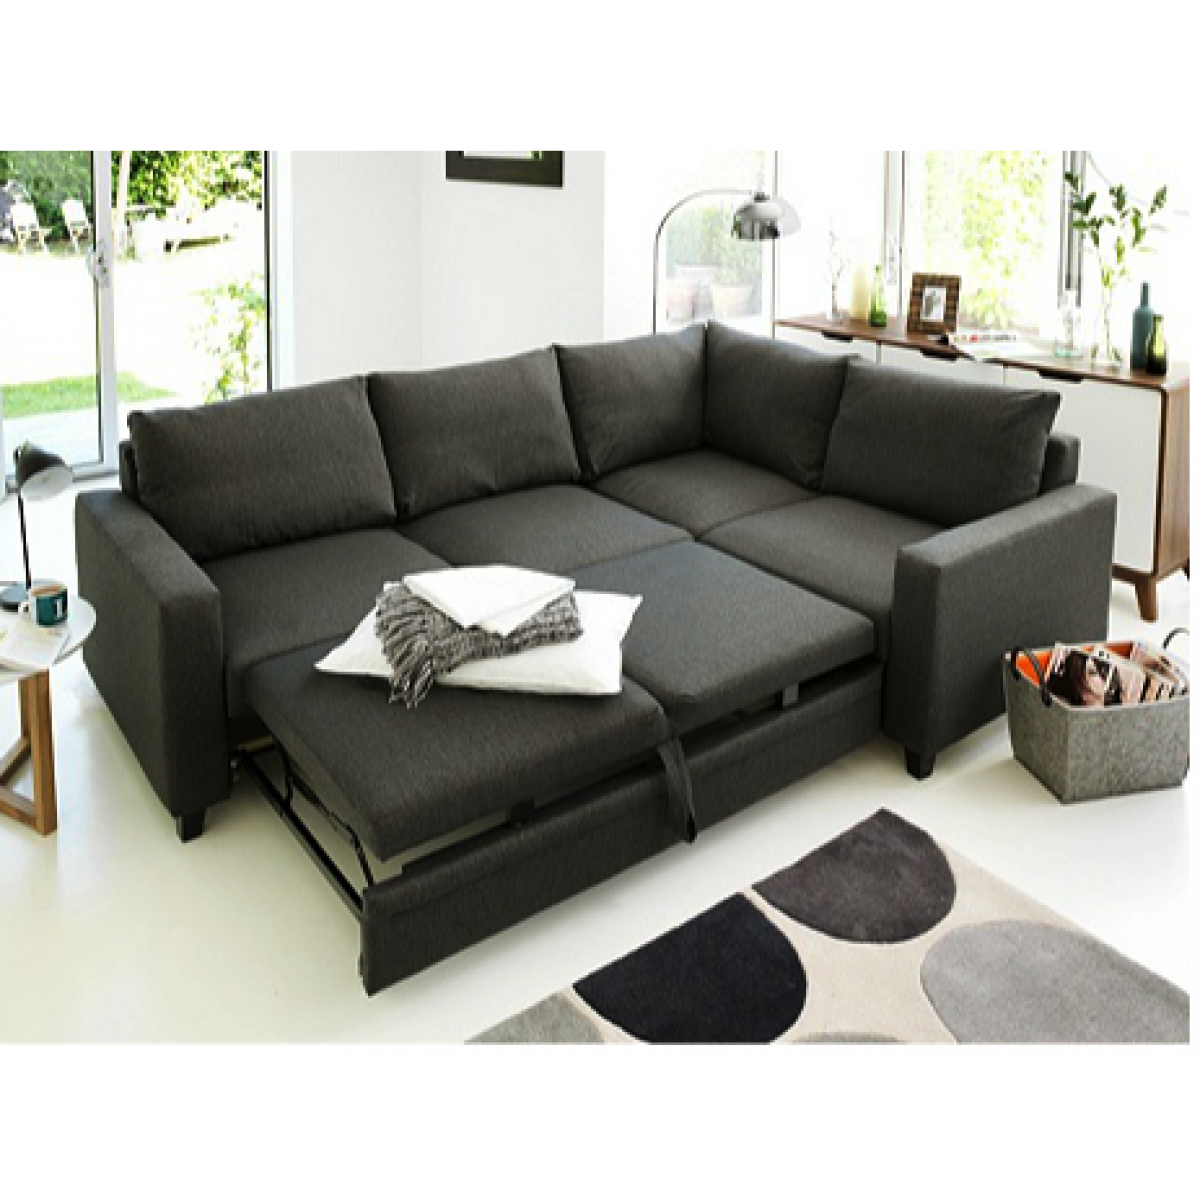 Get The Best In Both World Functionality And Elegance With Corner Sofa Beds Corner Sofa Living Room Comfy Corner Sofa Corner Sofa Small Living Room